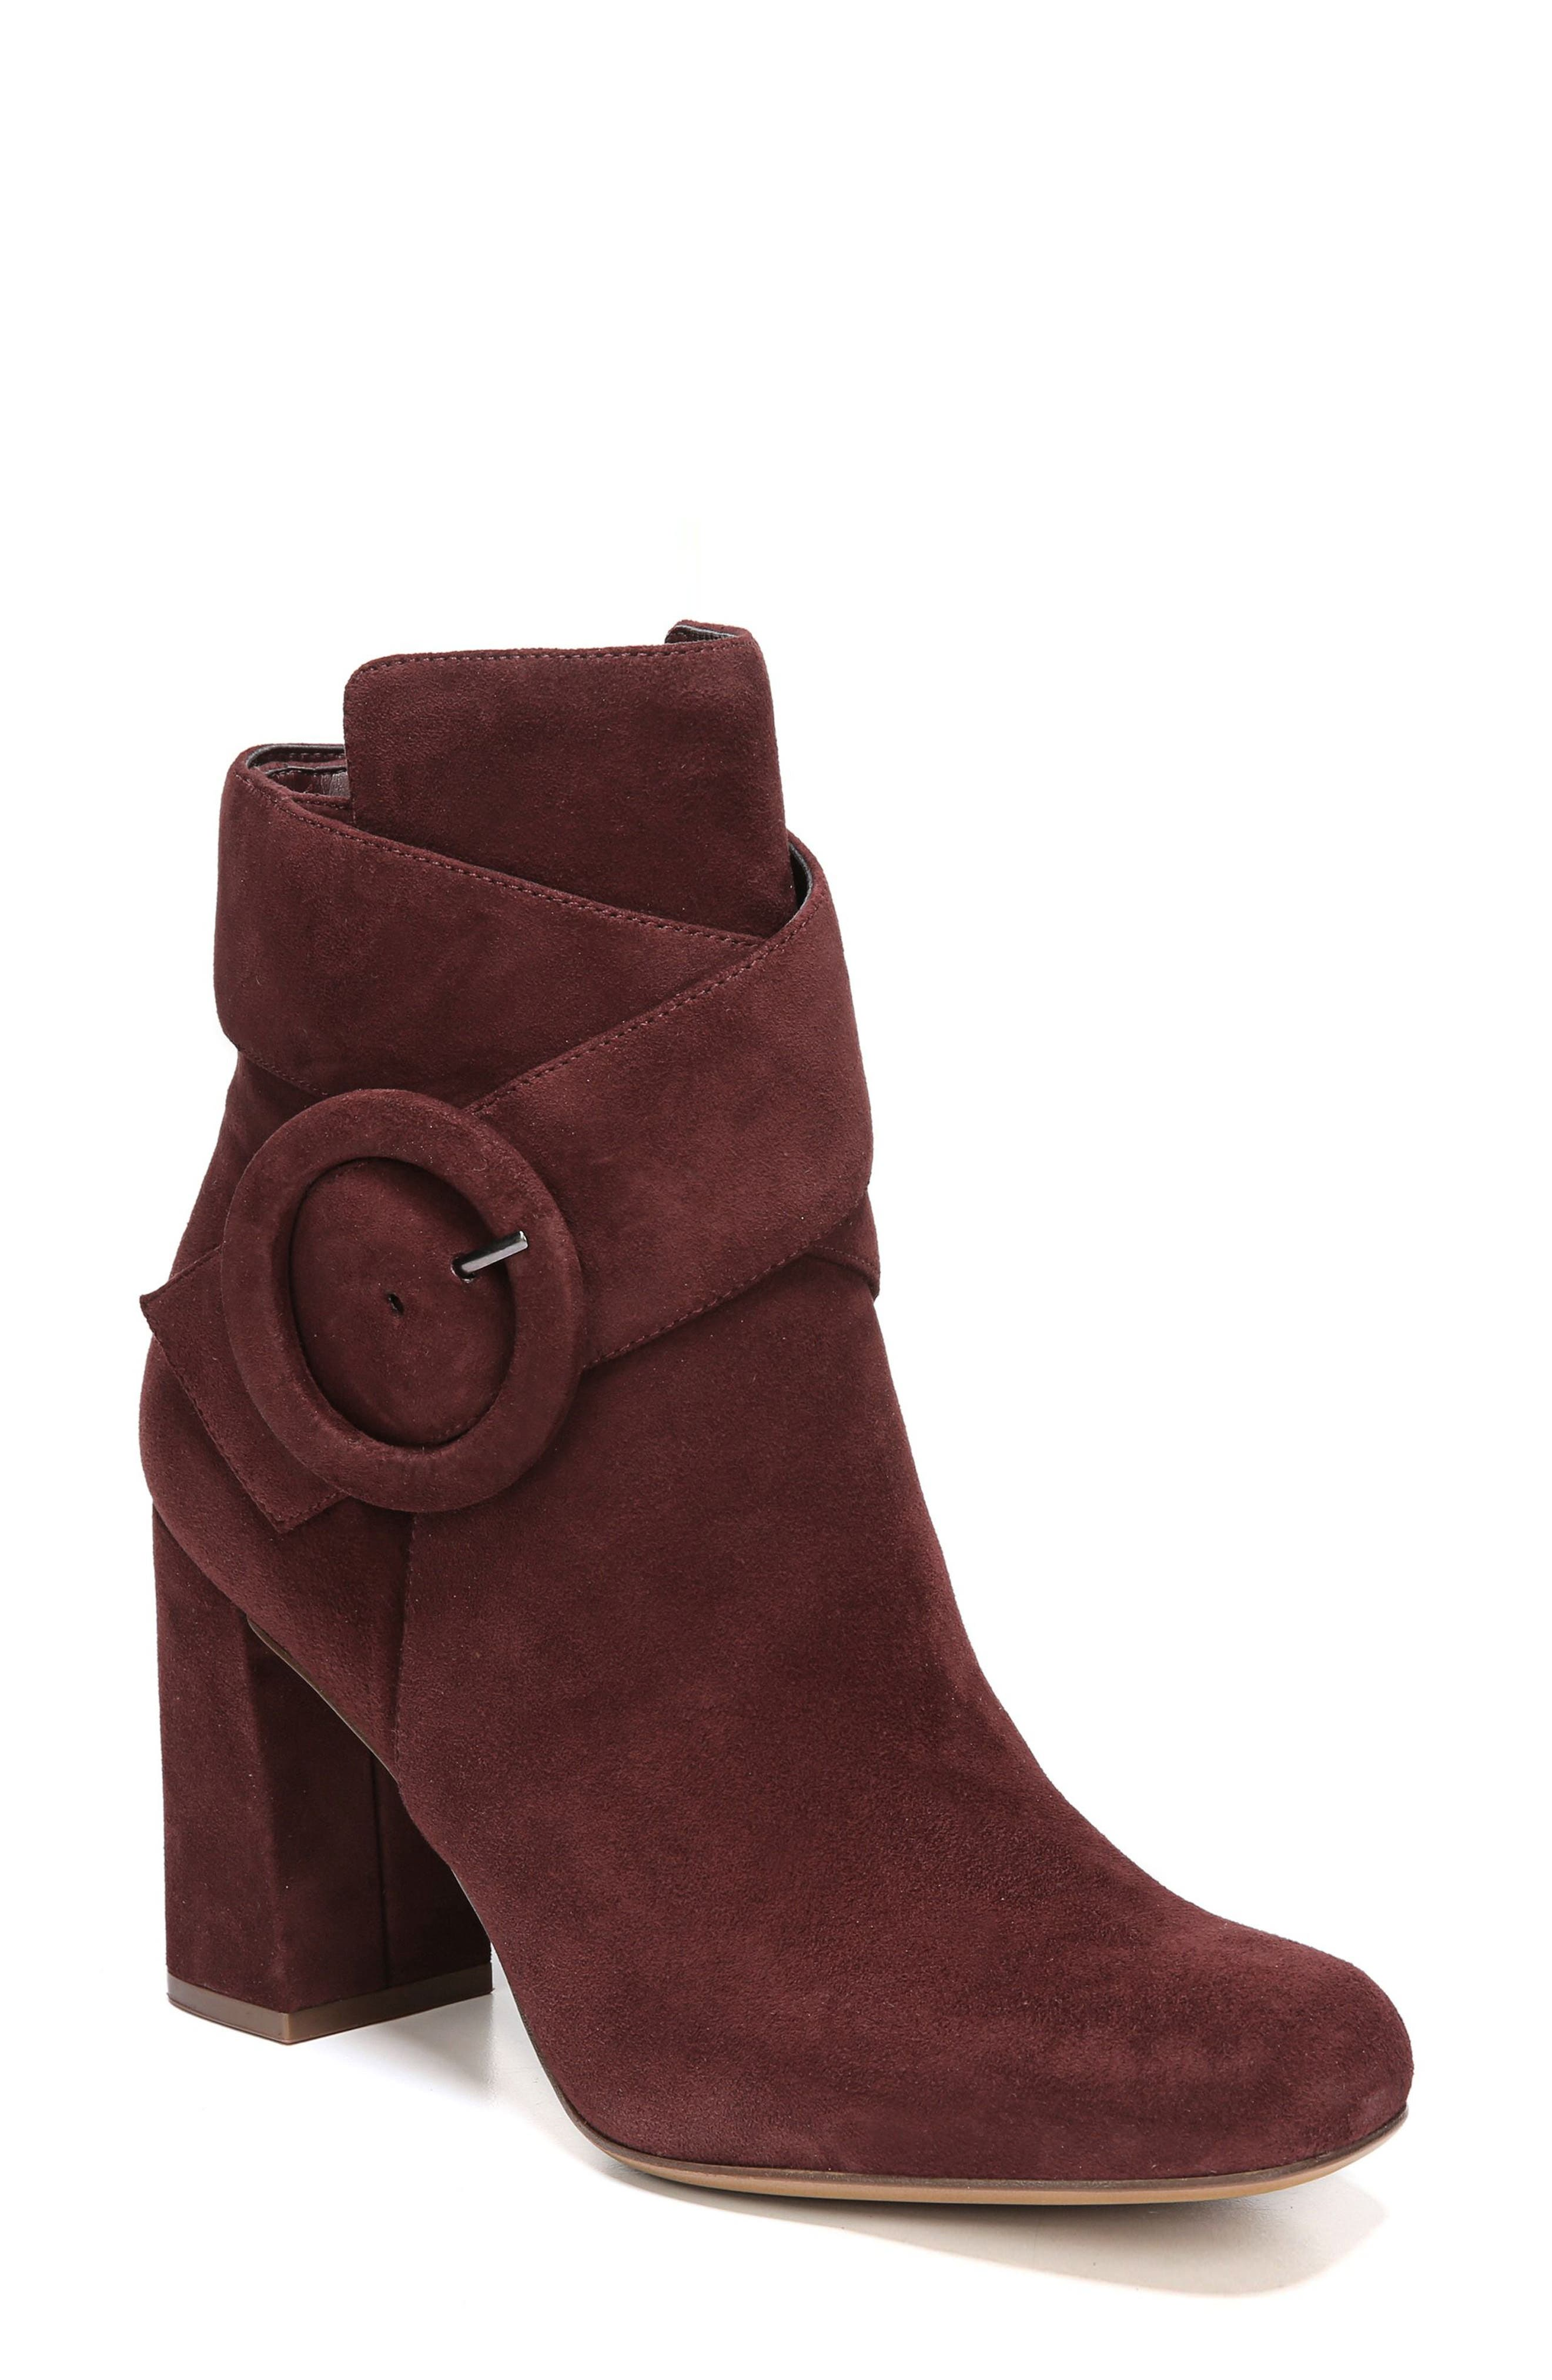 Nautralizer Rae Bootie,                             Main thumbnail 1, color,                             Bordo Leather